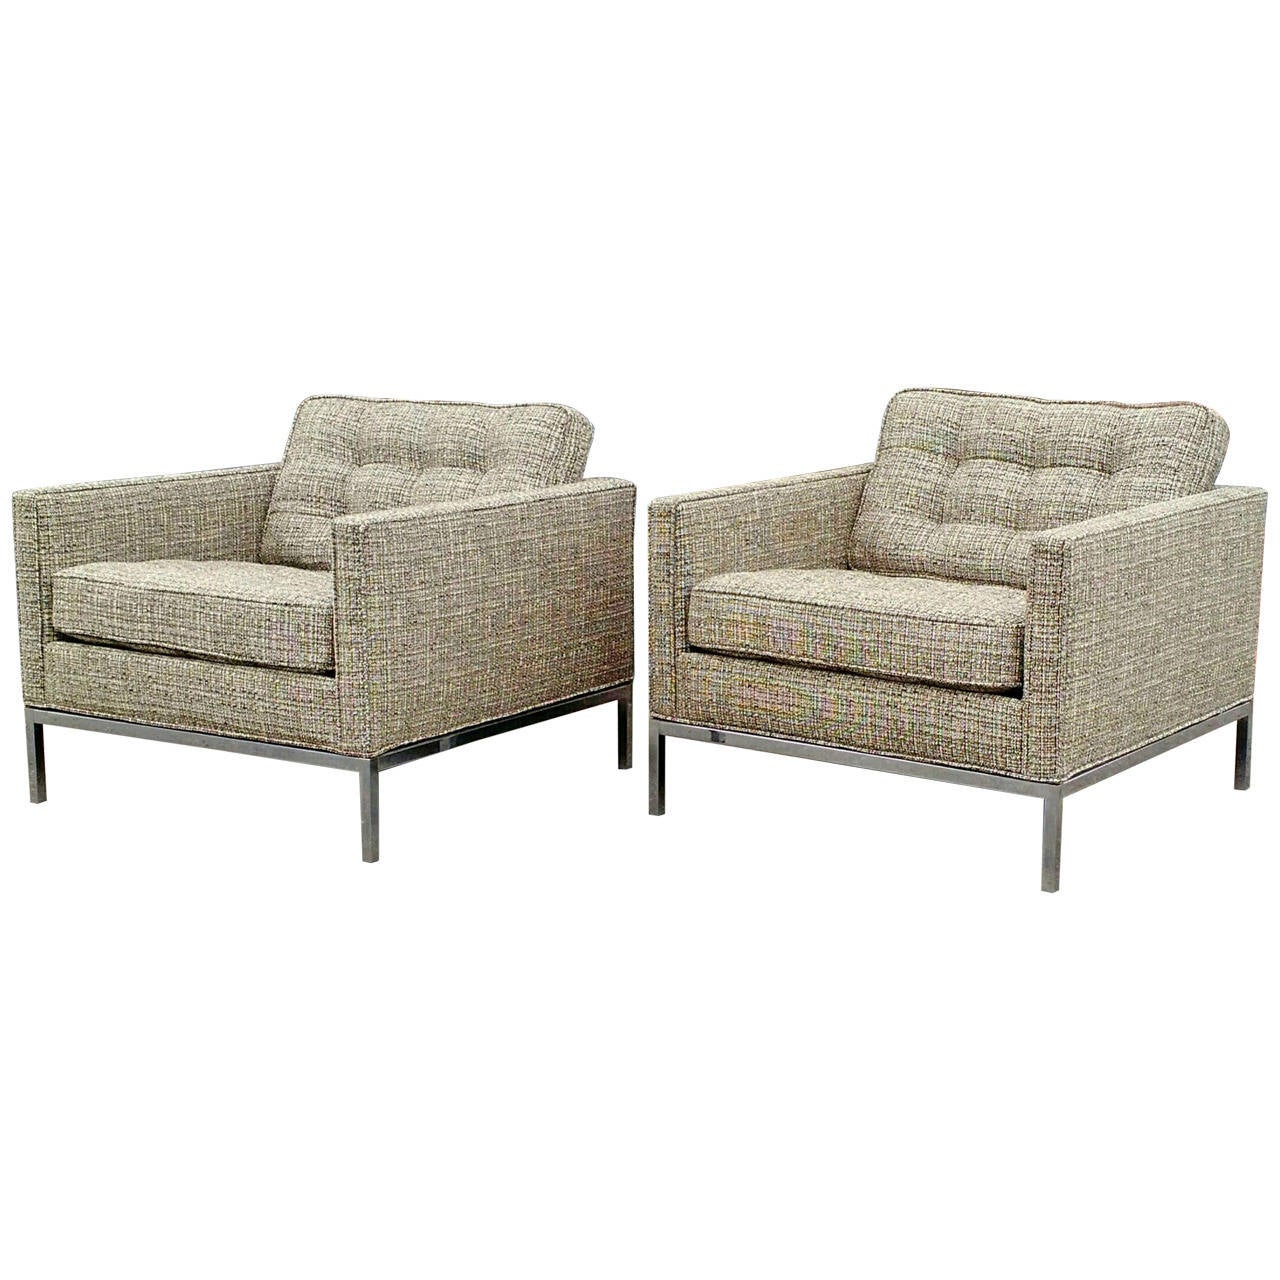 Pair of mid century modern florence knoll club chairs for sale